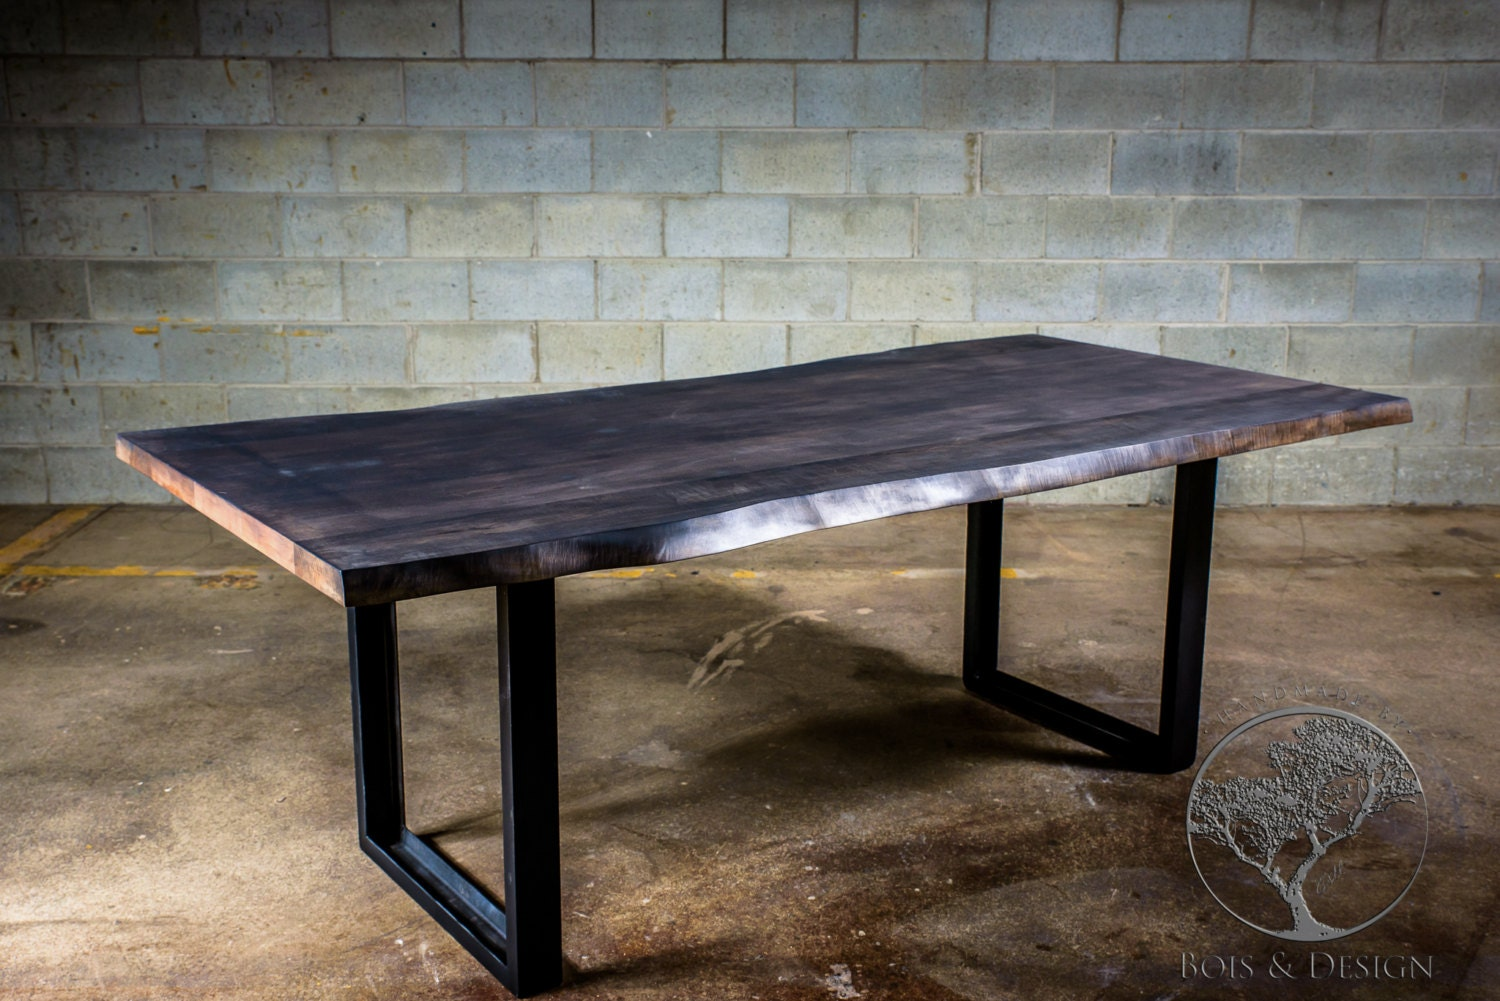 Live edge grey stained maple dining table : ilfullxfull840819191m644 from www.etsy.com size 1500 x 1001 jpeg 319kB